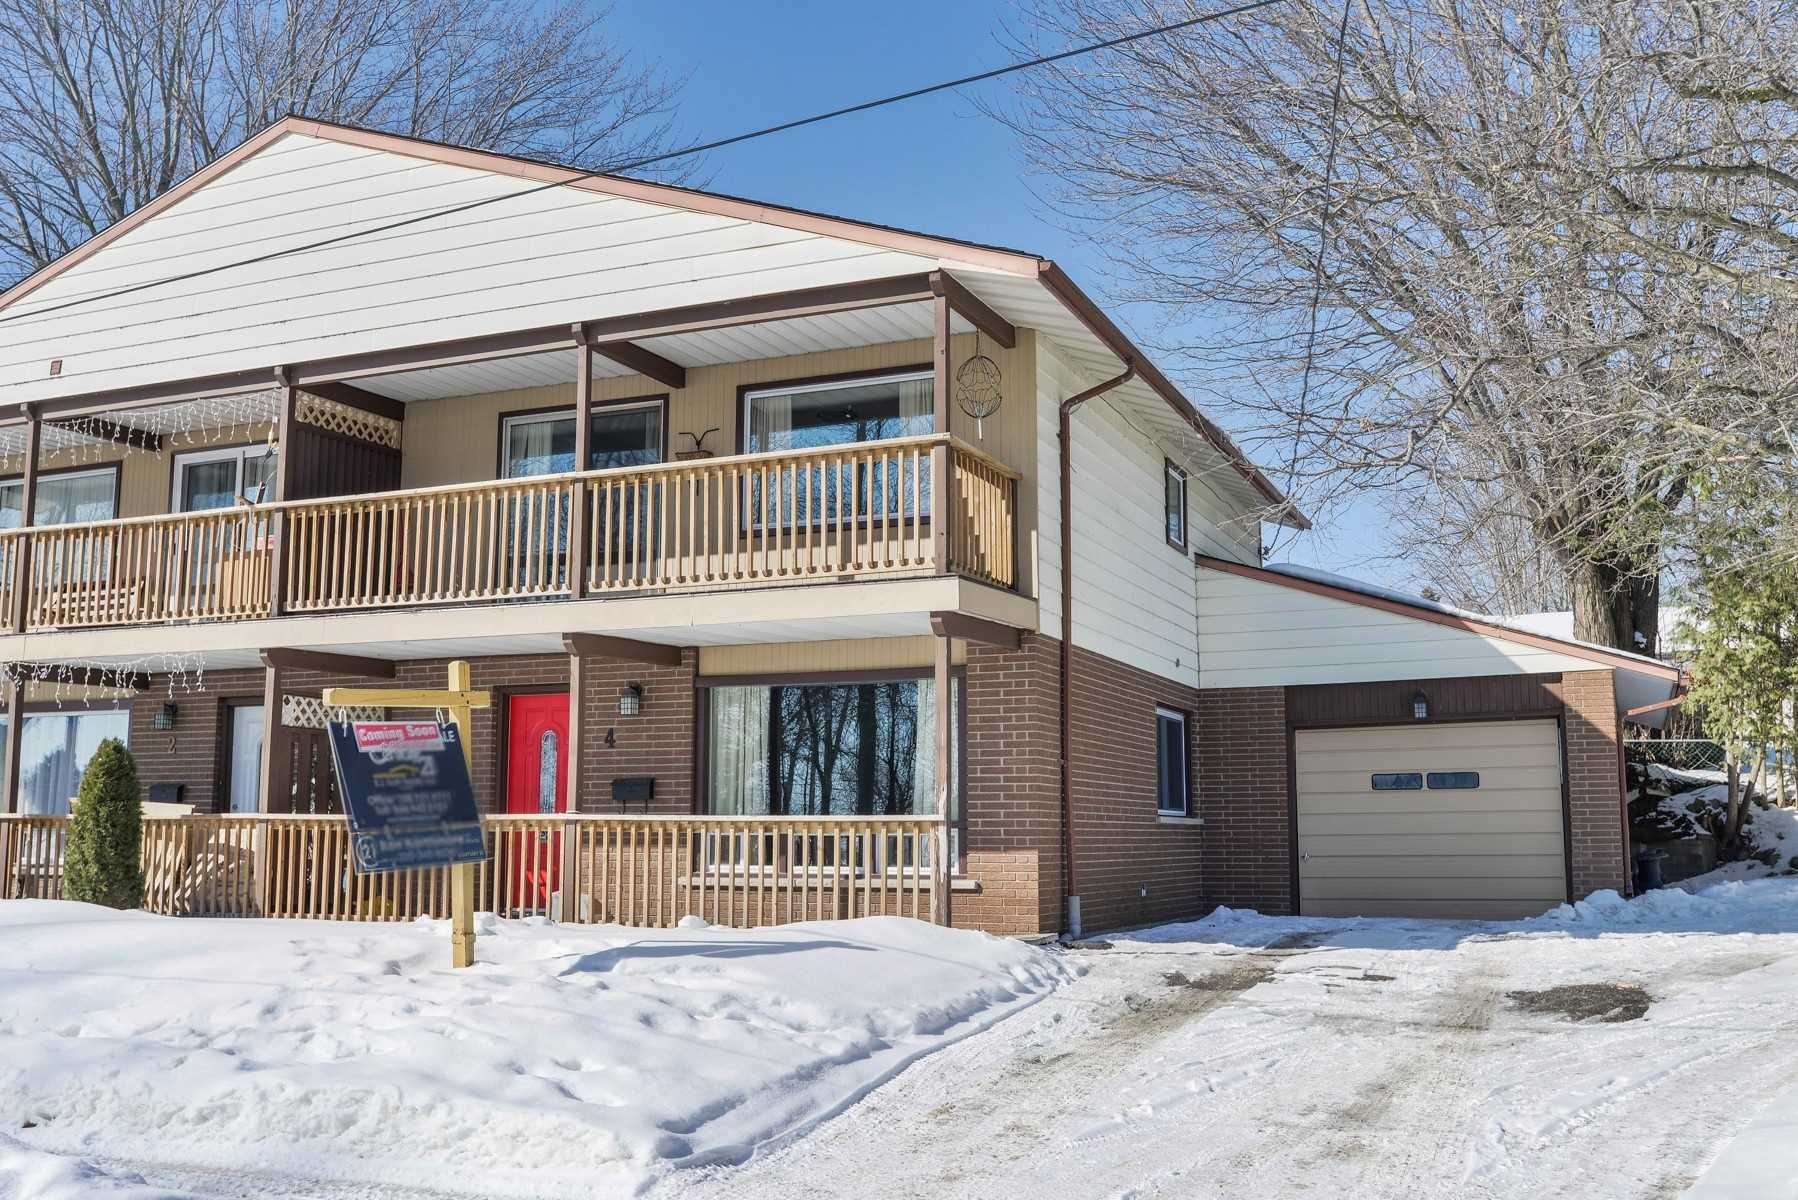 pictures of house for sale MLS: S4699518 located at 4 Shannon St, Orillia L3V6L7